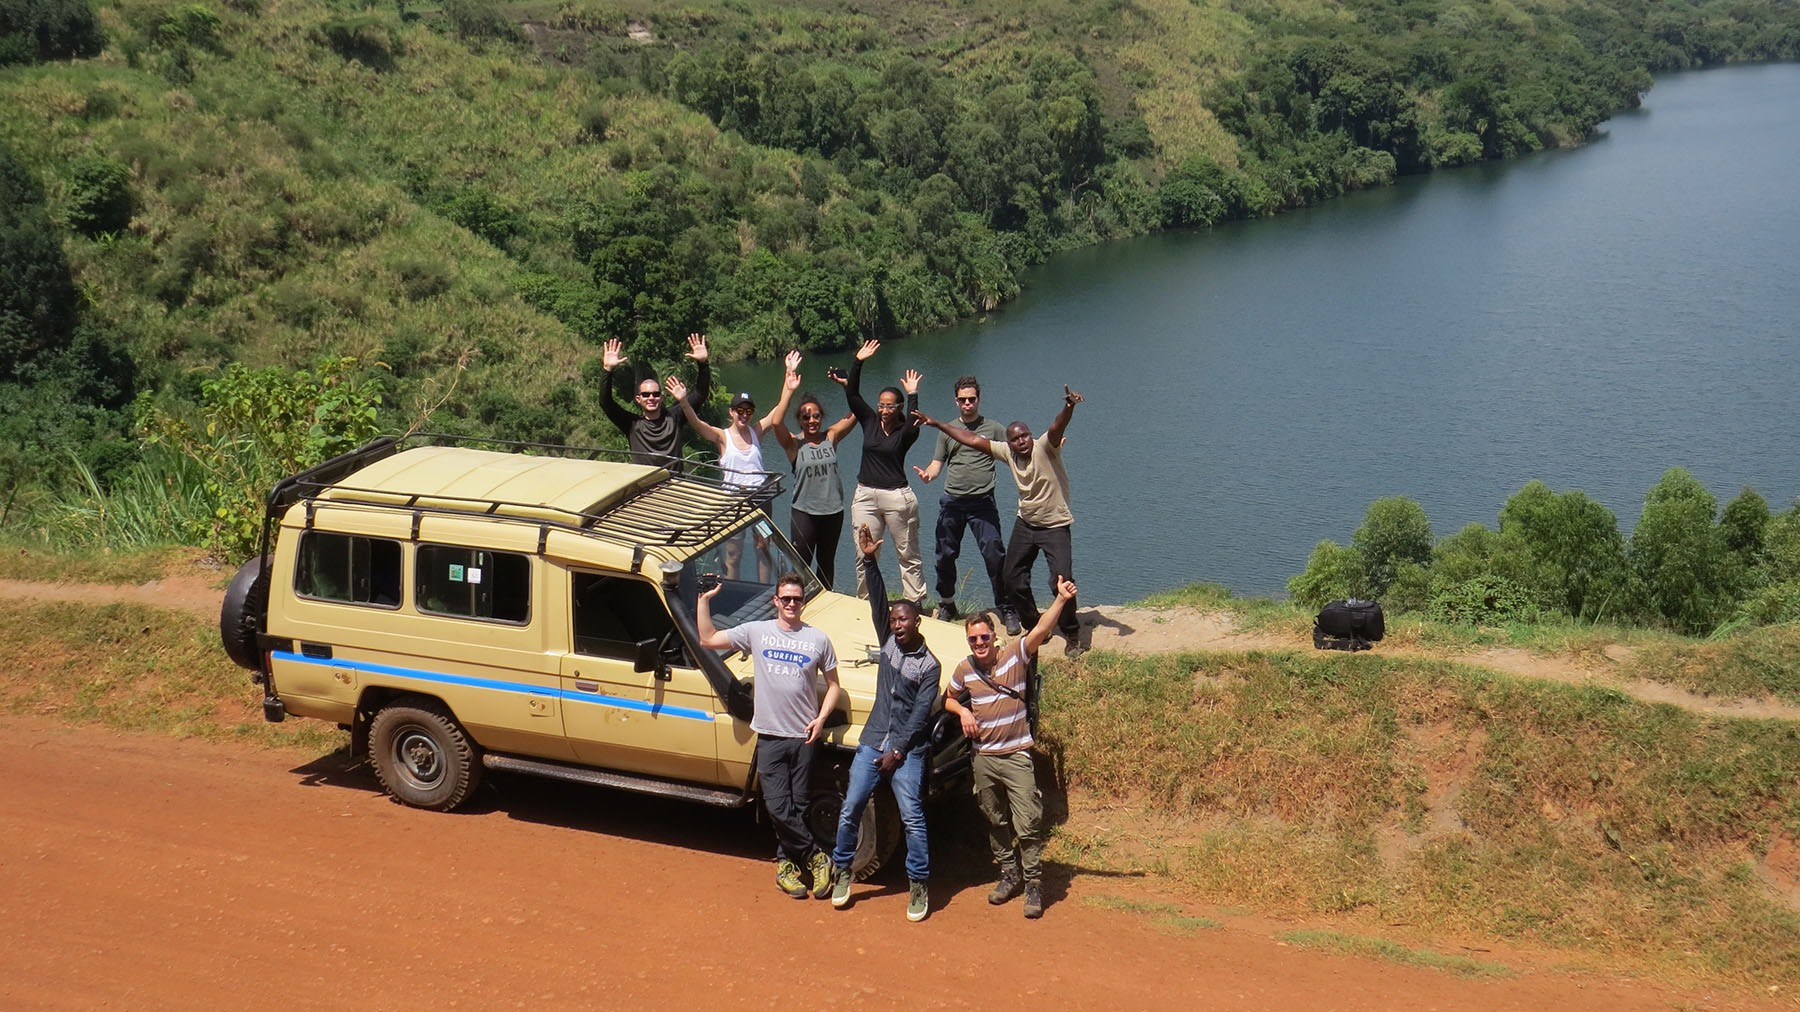 Our group posing for a photo on the road on Gorilla Trekking Uganda!